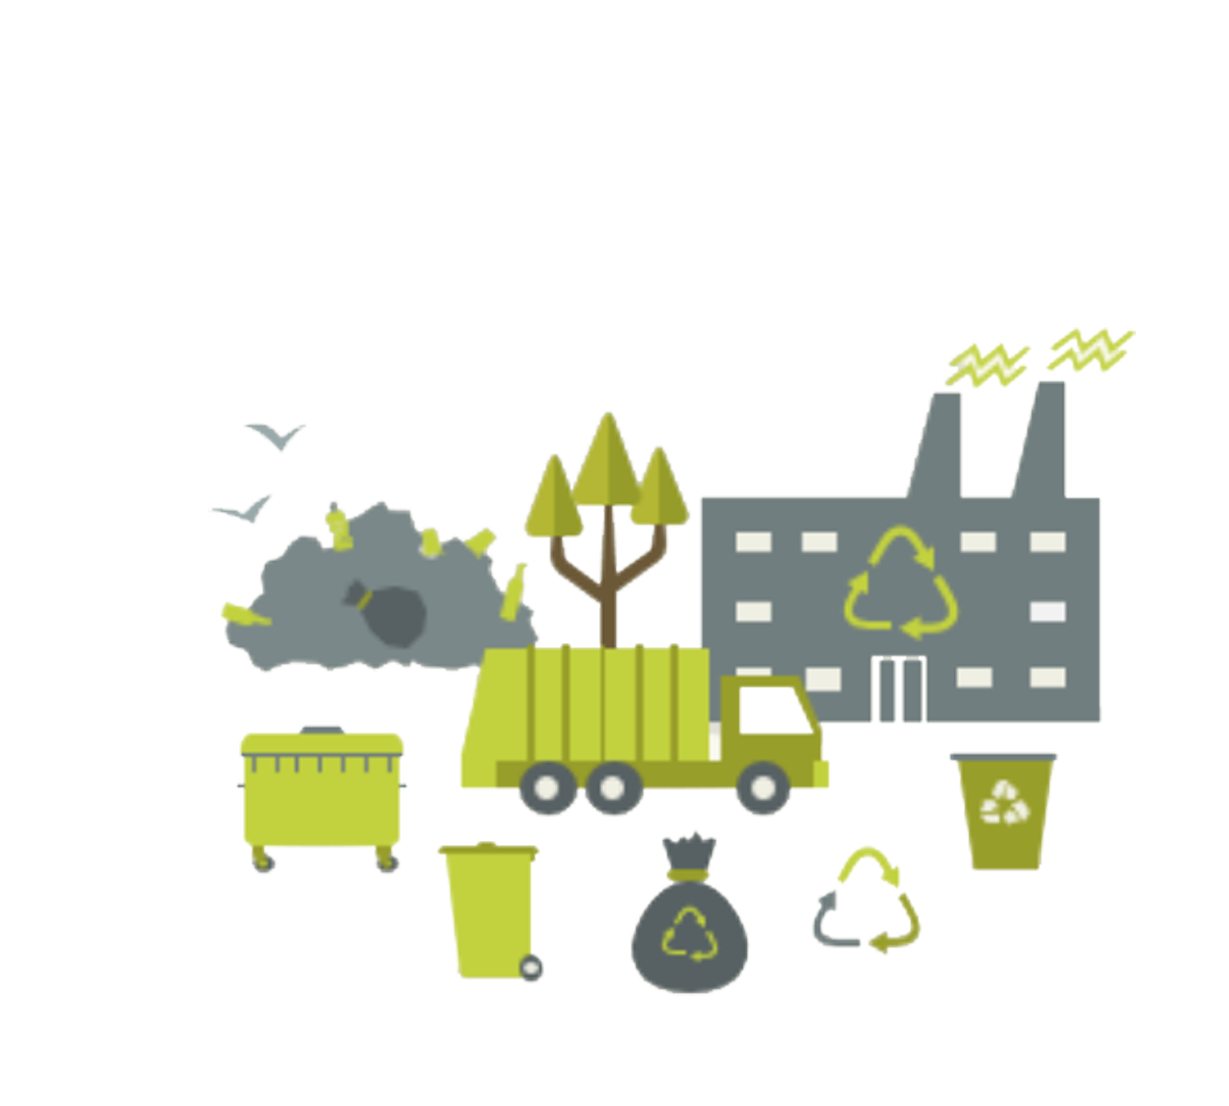 Bin Management Recycling Illustration Recycle Waste PNG Image